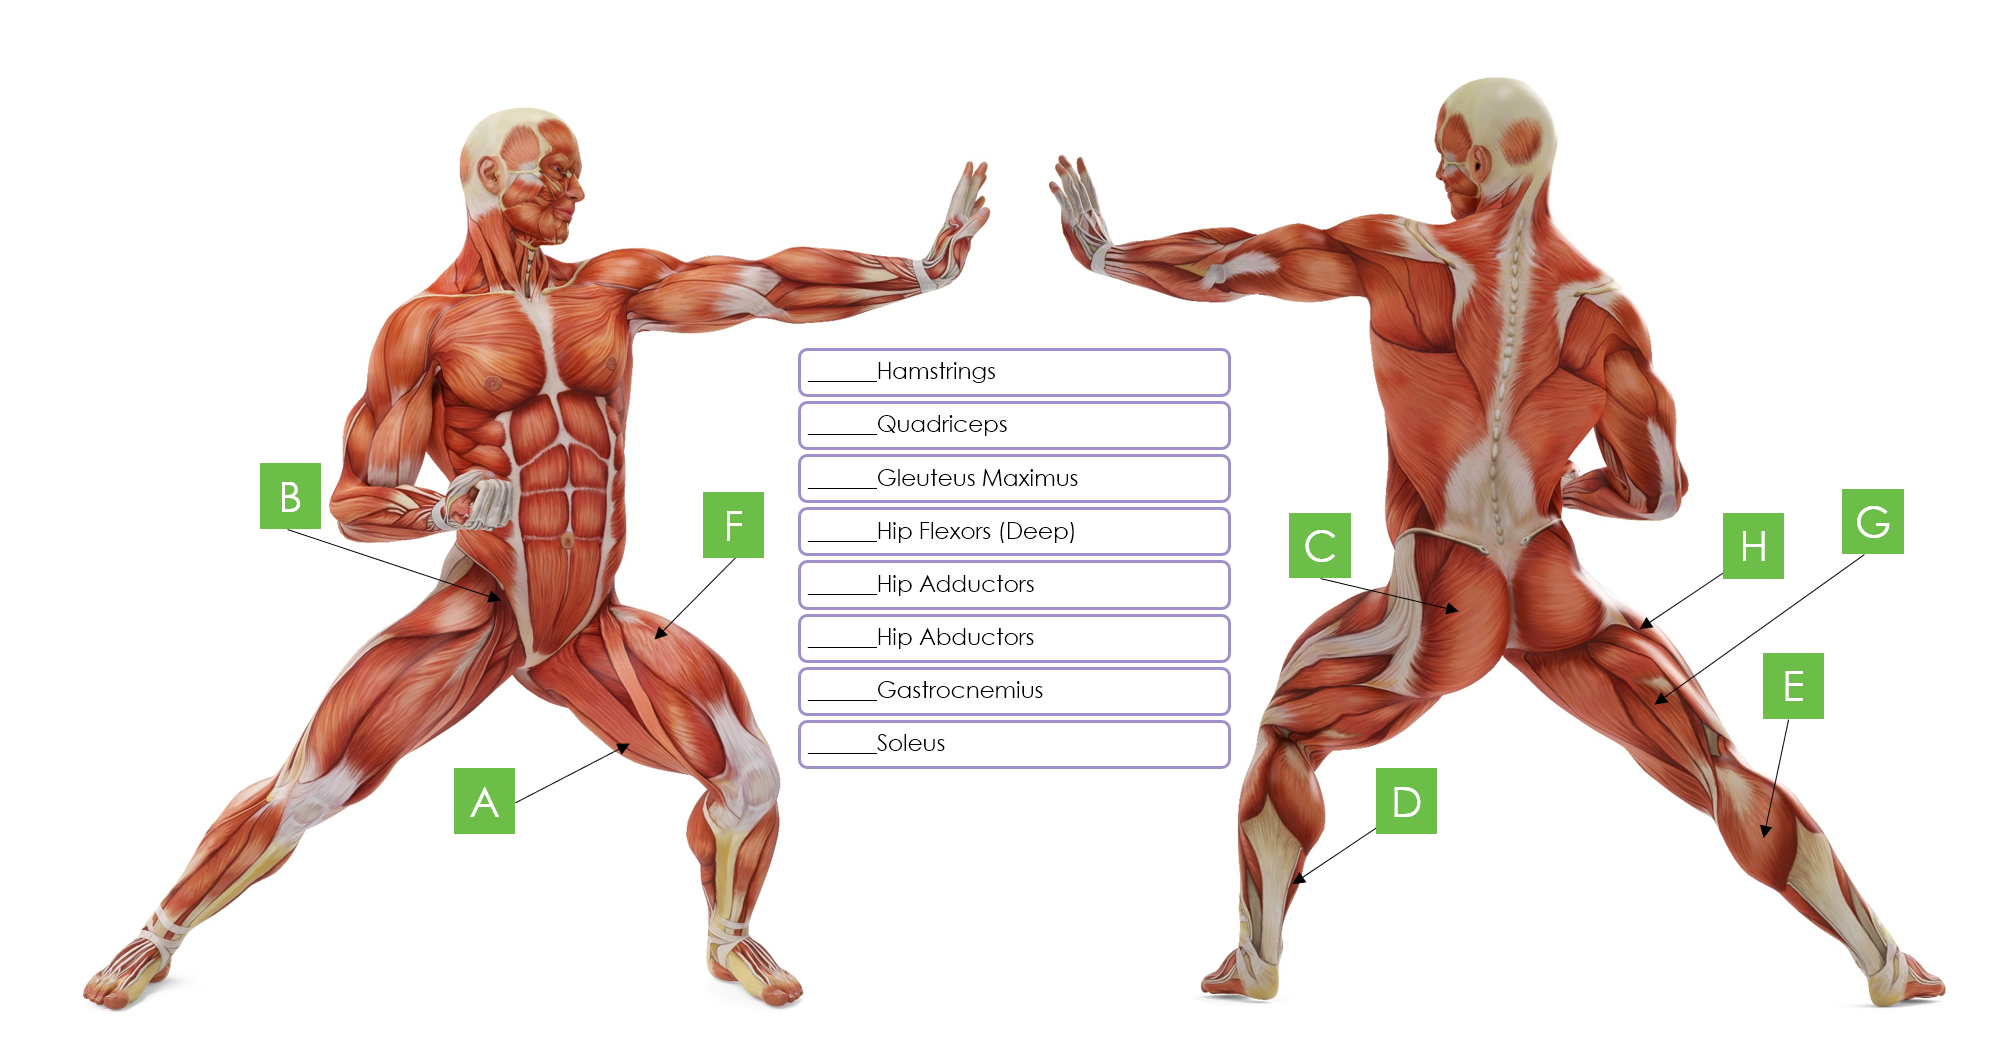 Lower Body Muscle Matching Guide